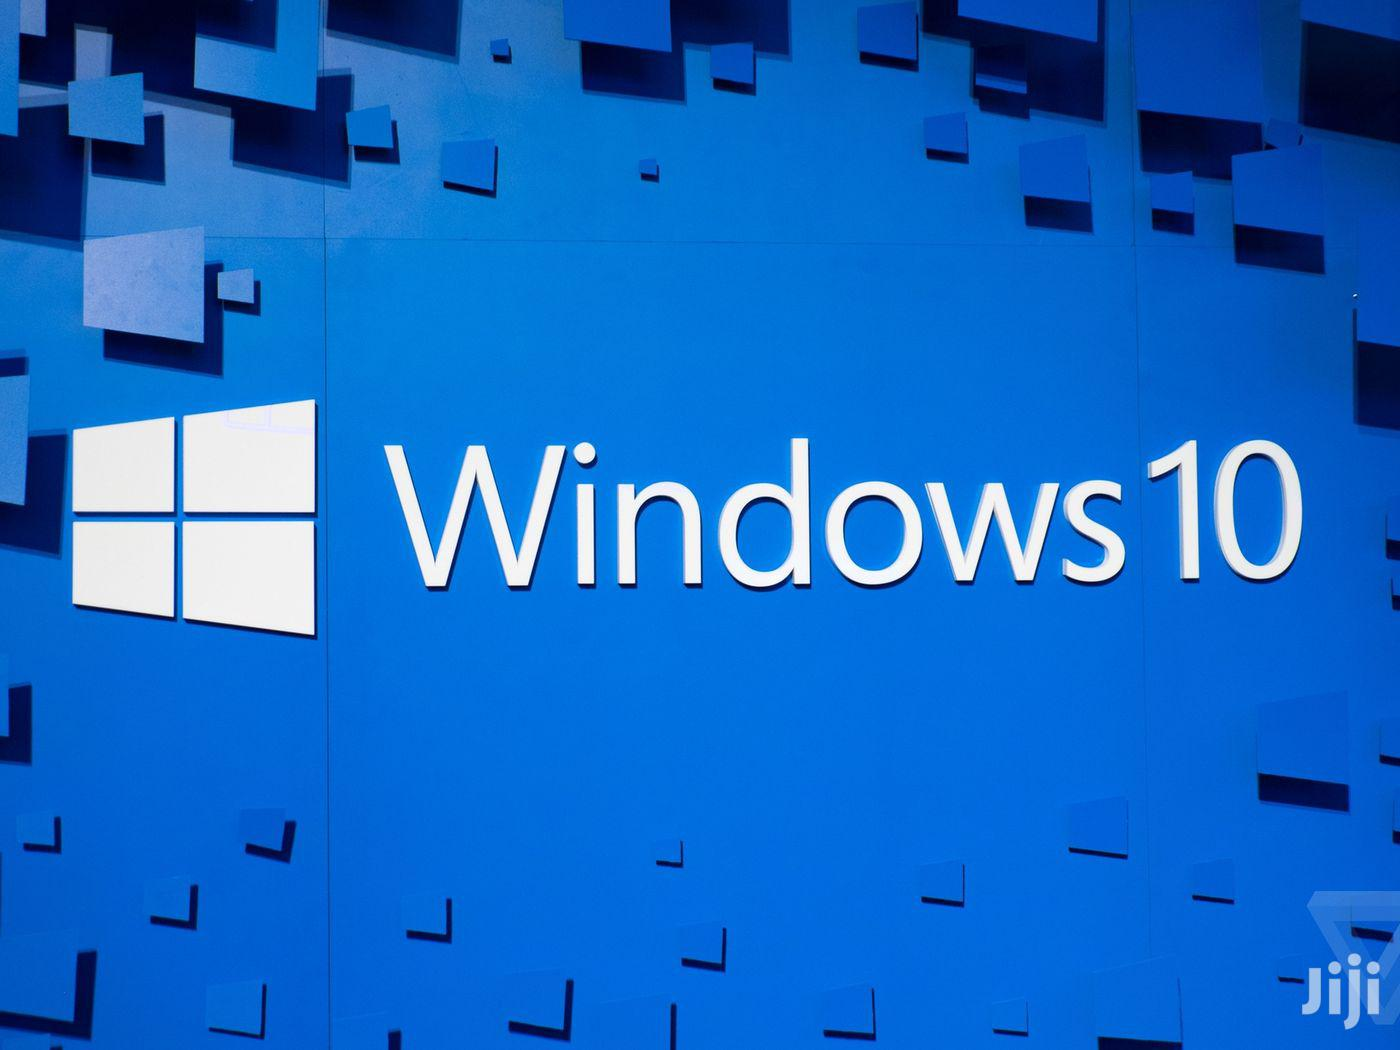 Archive: Windows 10 Package